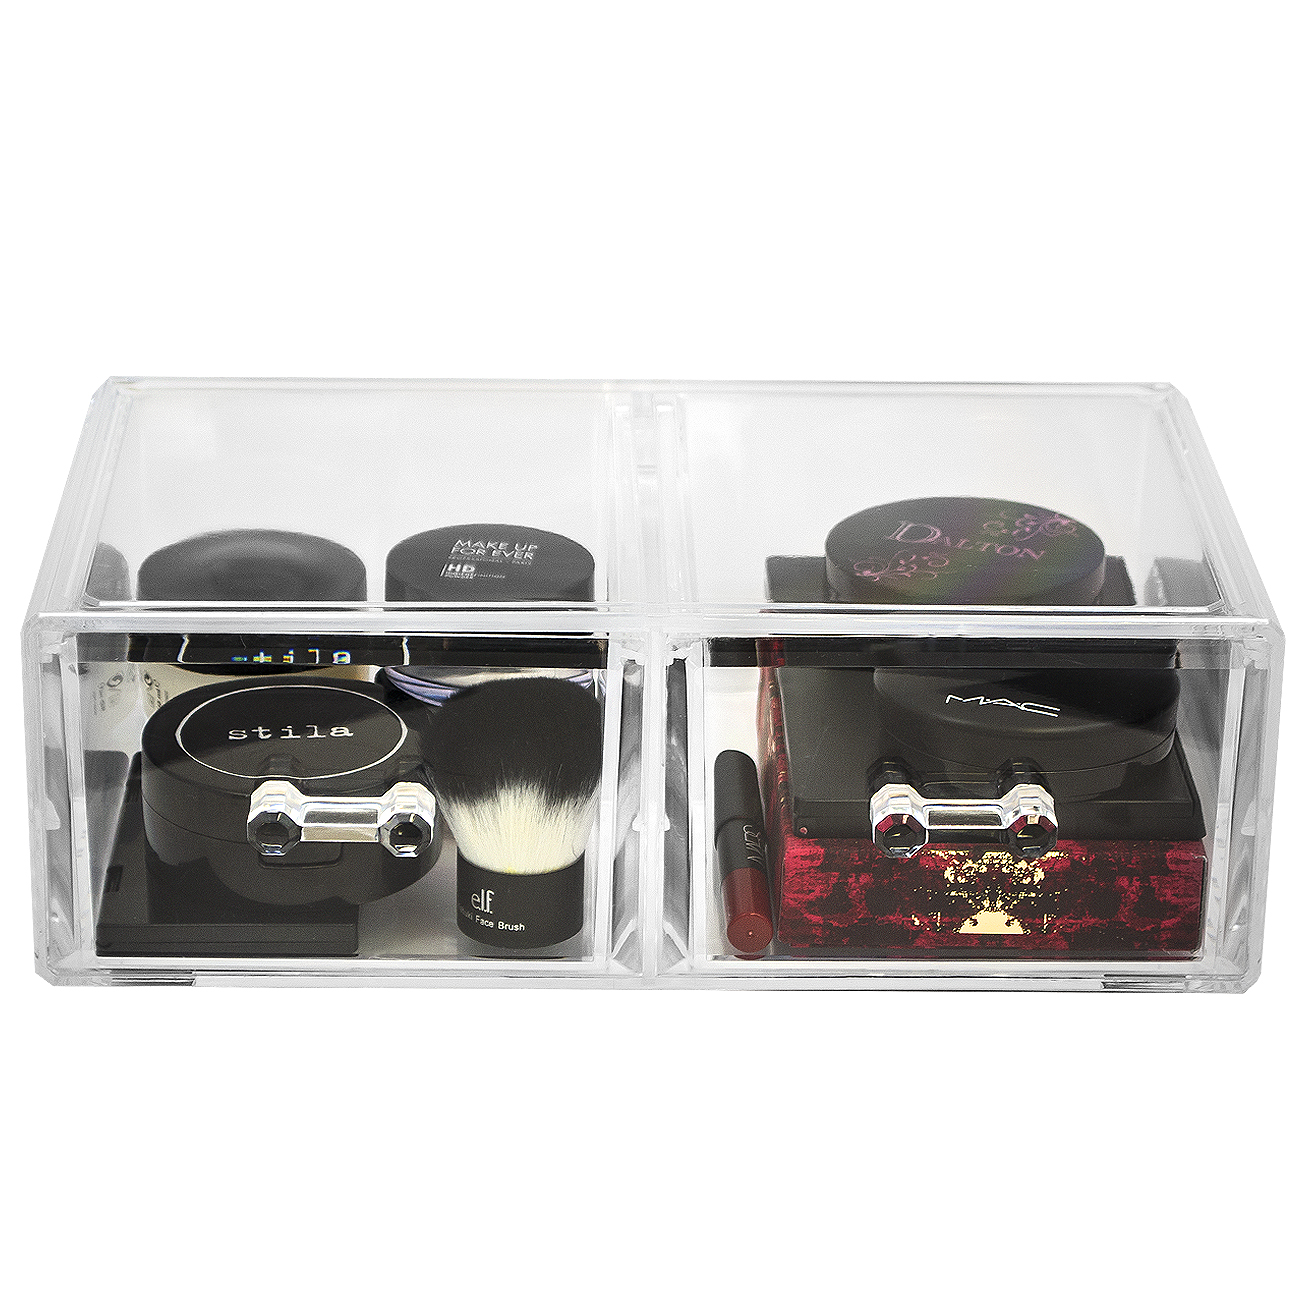 Sorbus Acrylic Cosmetics Makeup and Jewelry Storage Case Display Sets - Interlocking Drawers to Create Your Own Specially Designed Makeup Counter - Each Drawer Is Stackable, Detachable, and Interchan